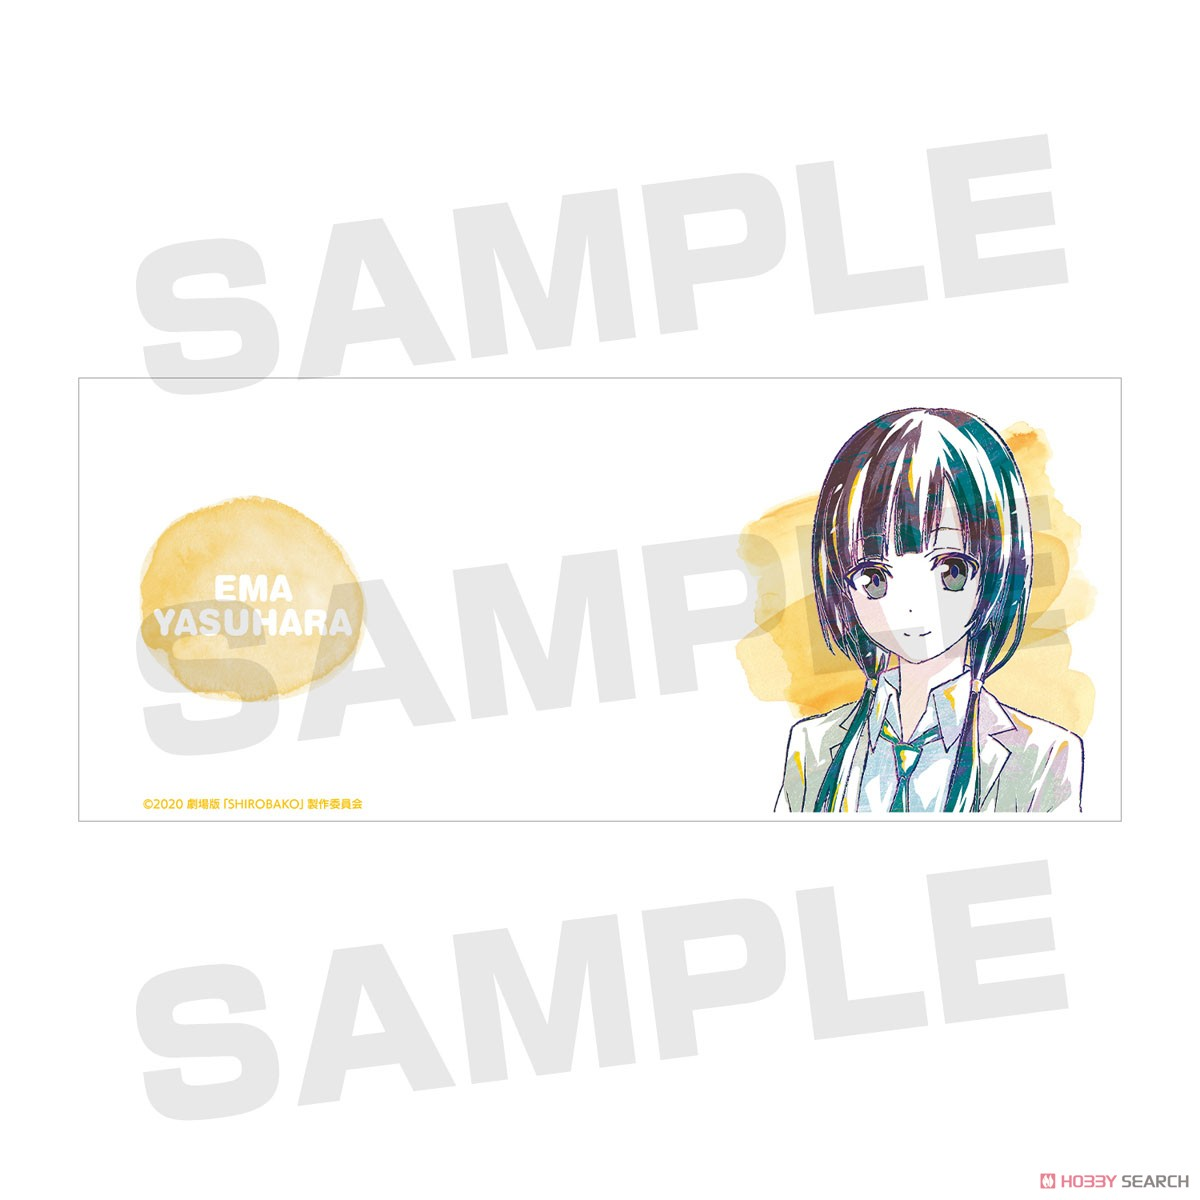 Shirobako the Movie Ema Yasuhara Ani-Art Mug Cup (Anime Toy) Item picture3